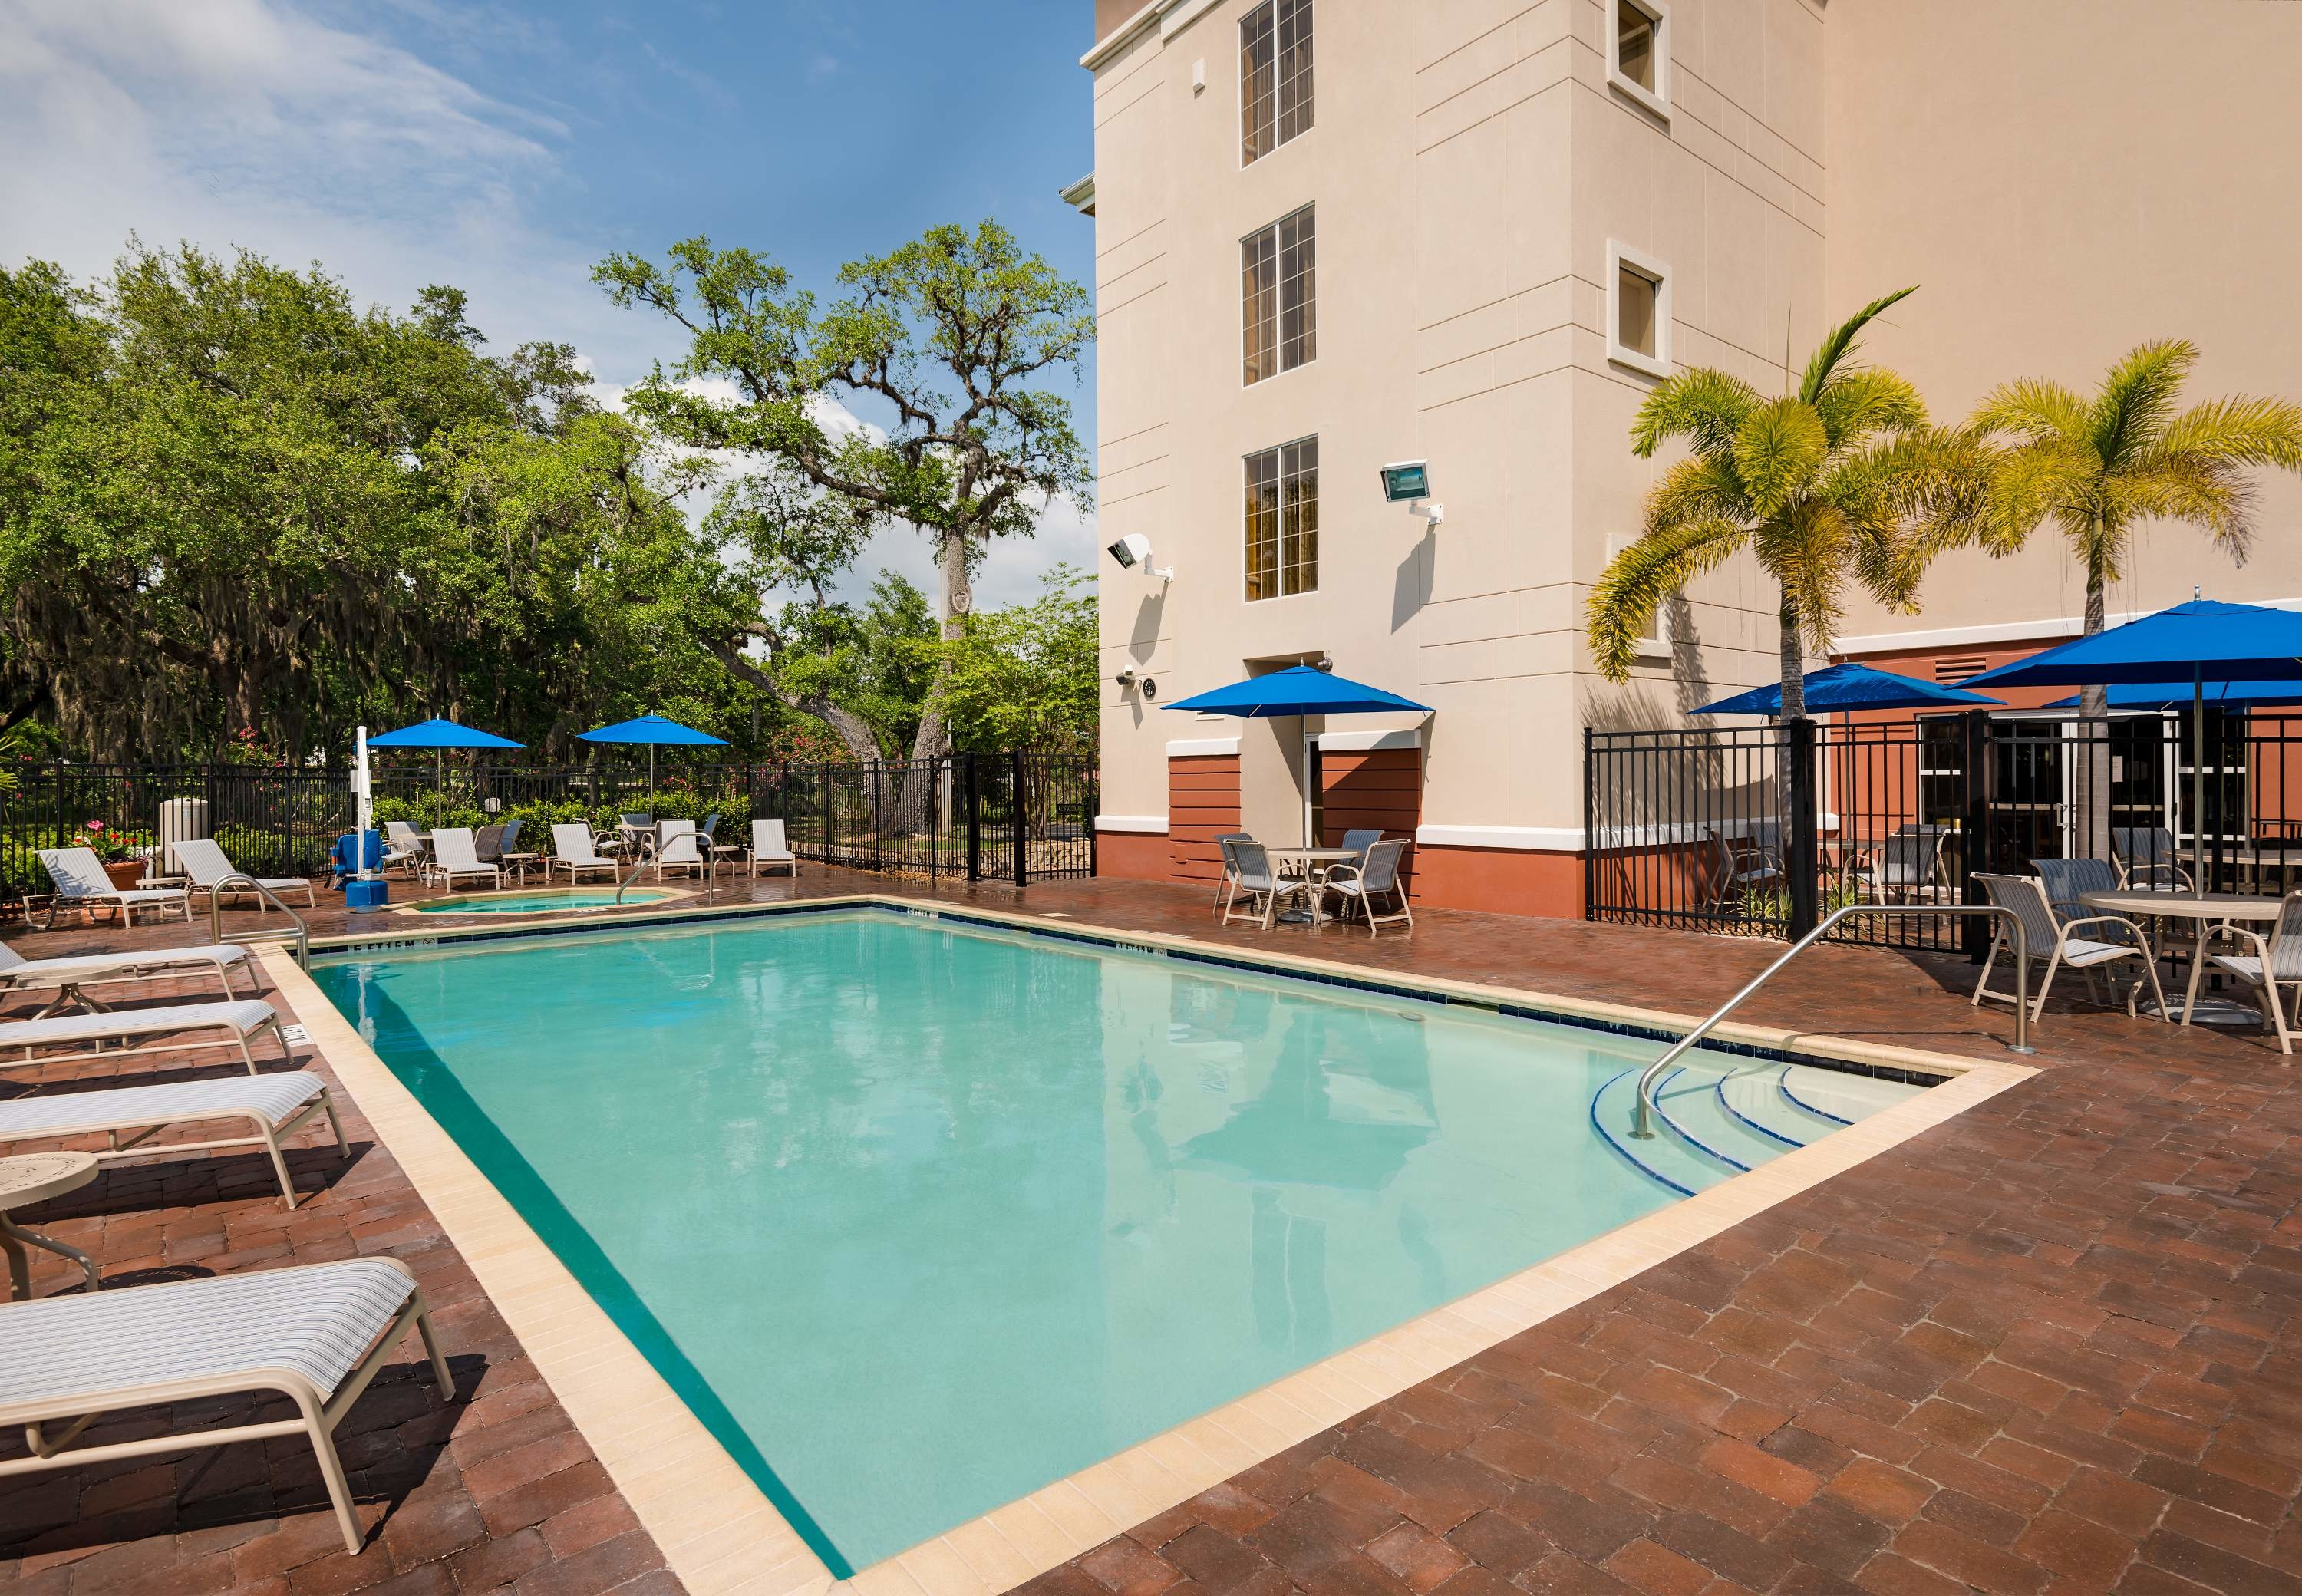 Fairfield Inn & Suites by Marriott Clearwater image 5